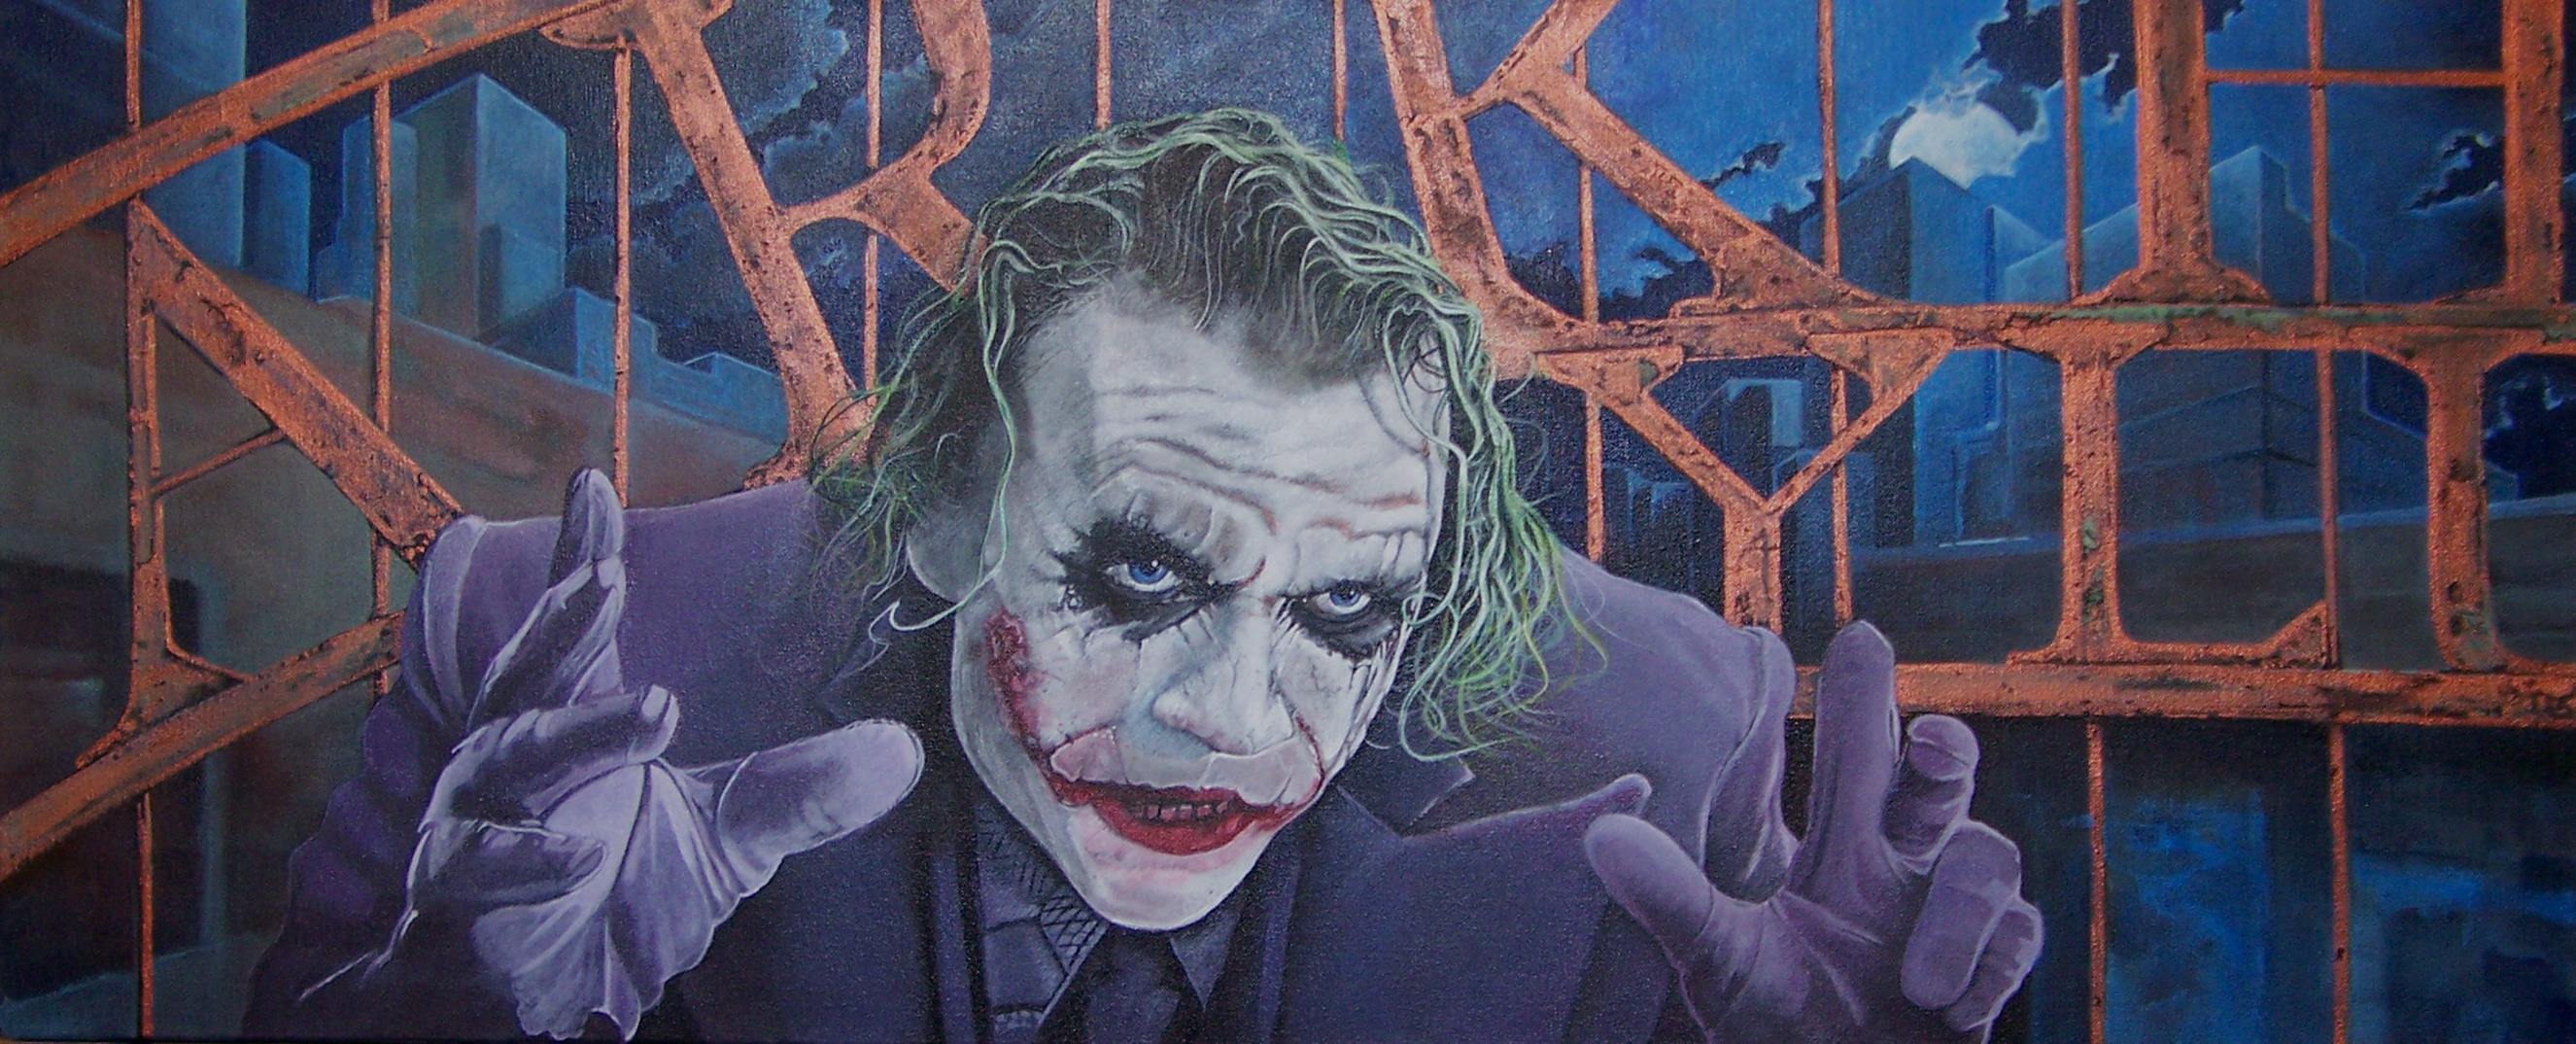 The Joker . Mr Ledger R.I.P